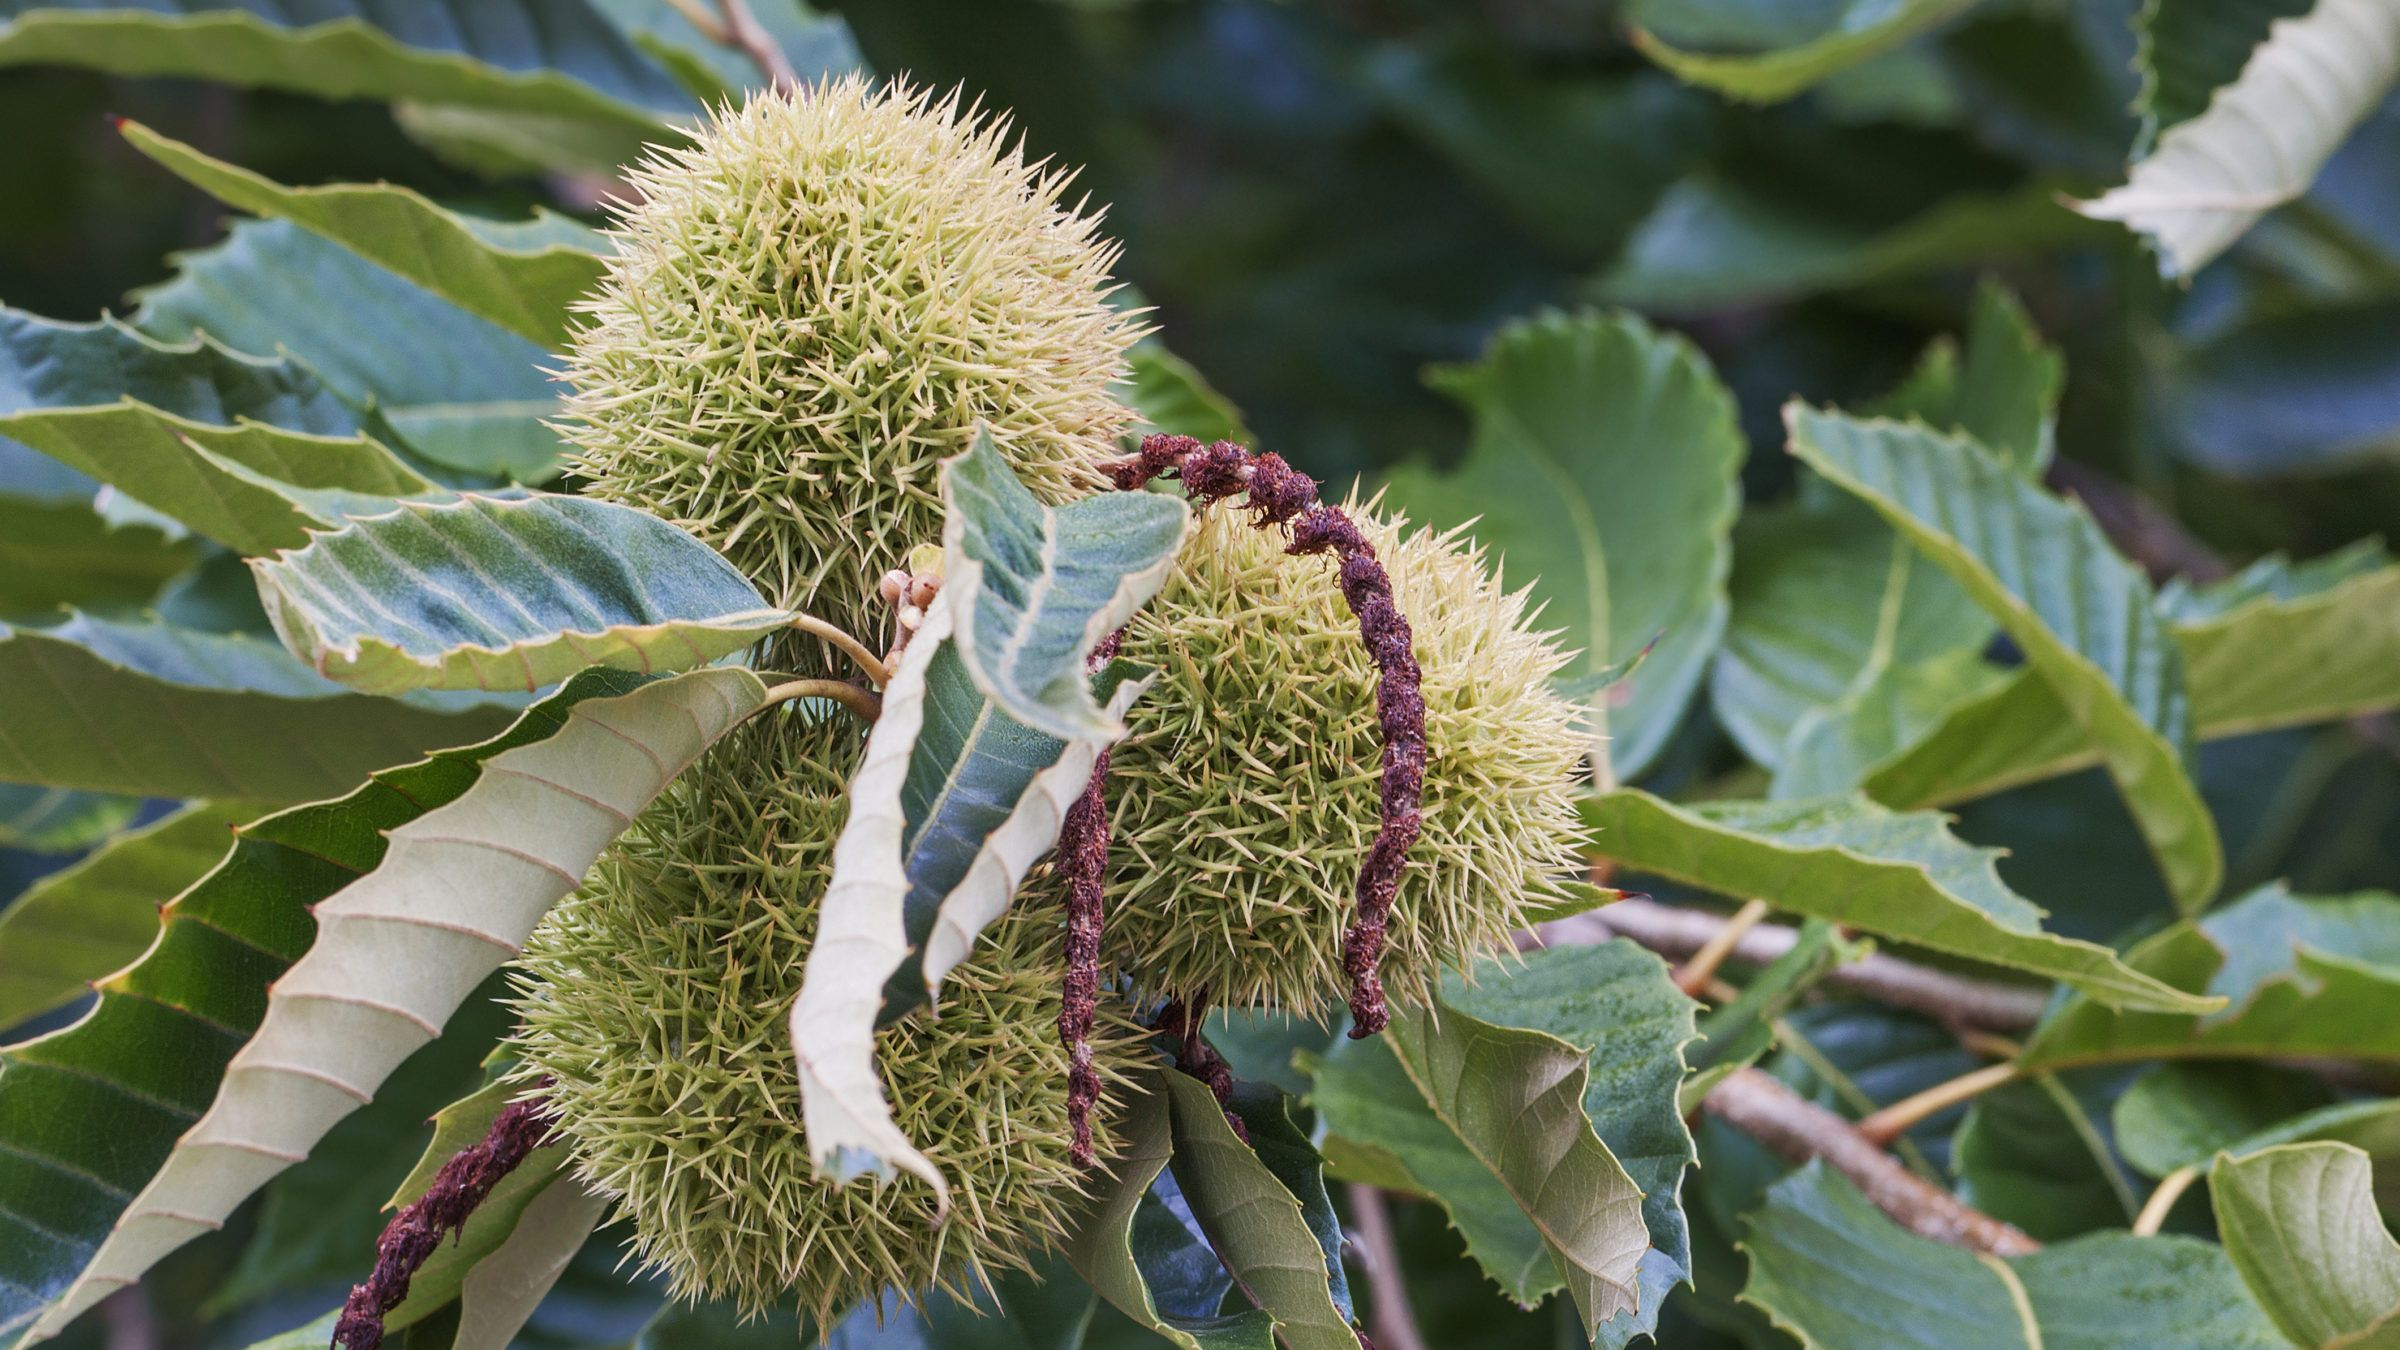 The USDA Should Let People Plant Blight-Resistant American Chestnut Trees